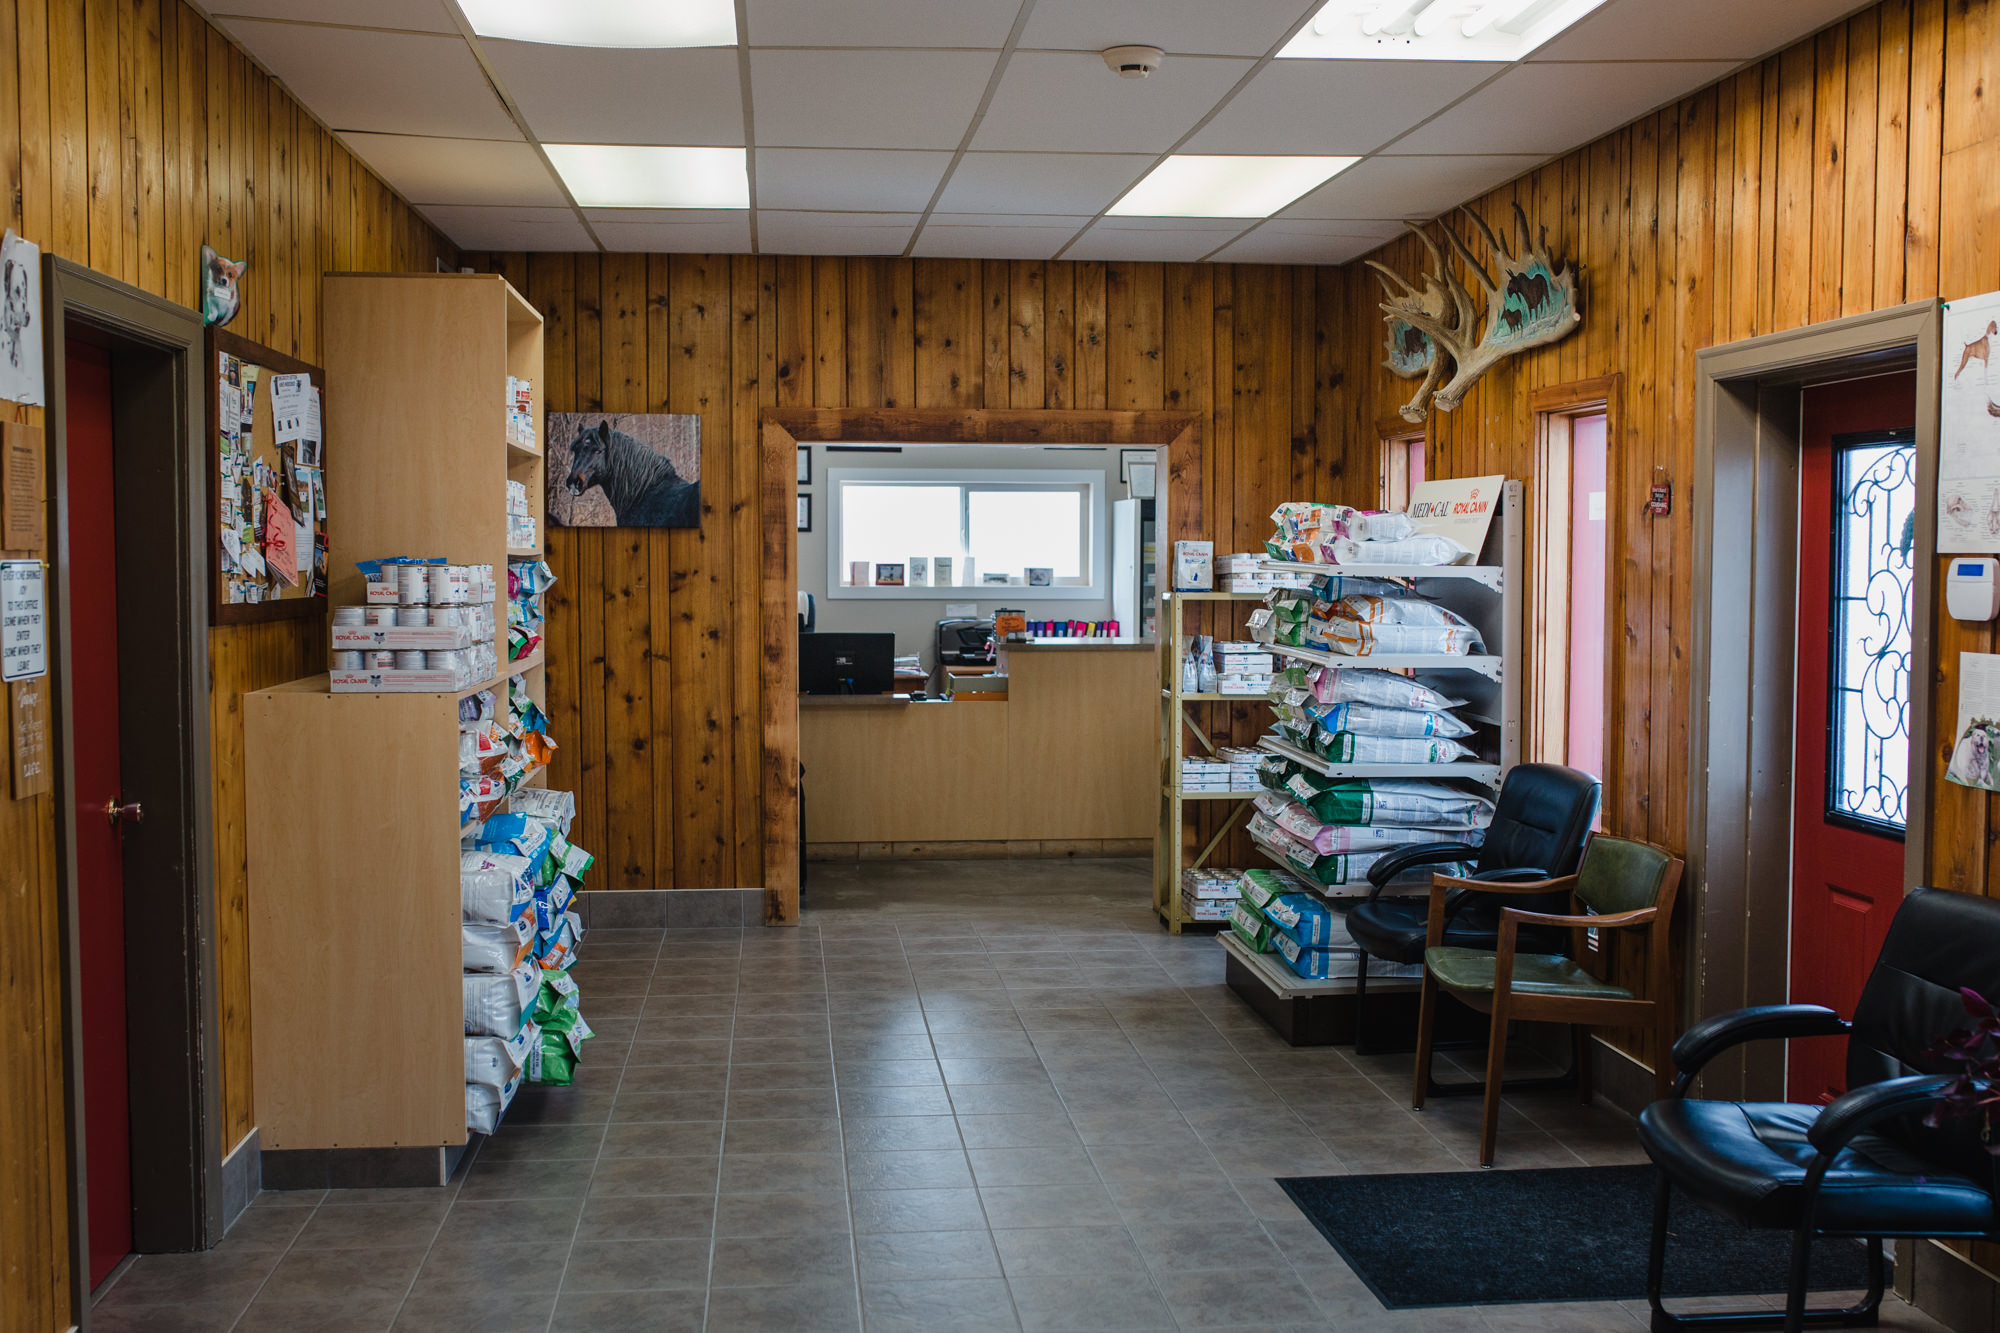 quesnel-verterinary-clinic-qvc-quesnel-vets-large-small-animal-clinic-quesnel-bc (30 of 43).jpg